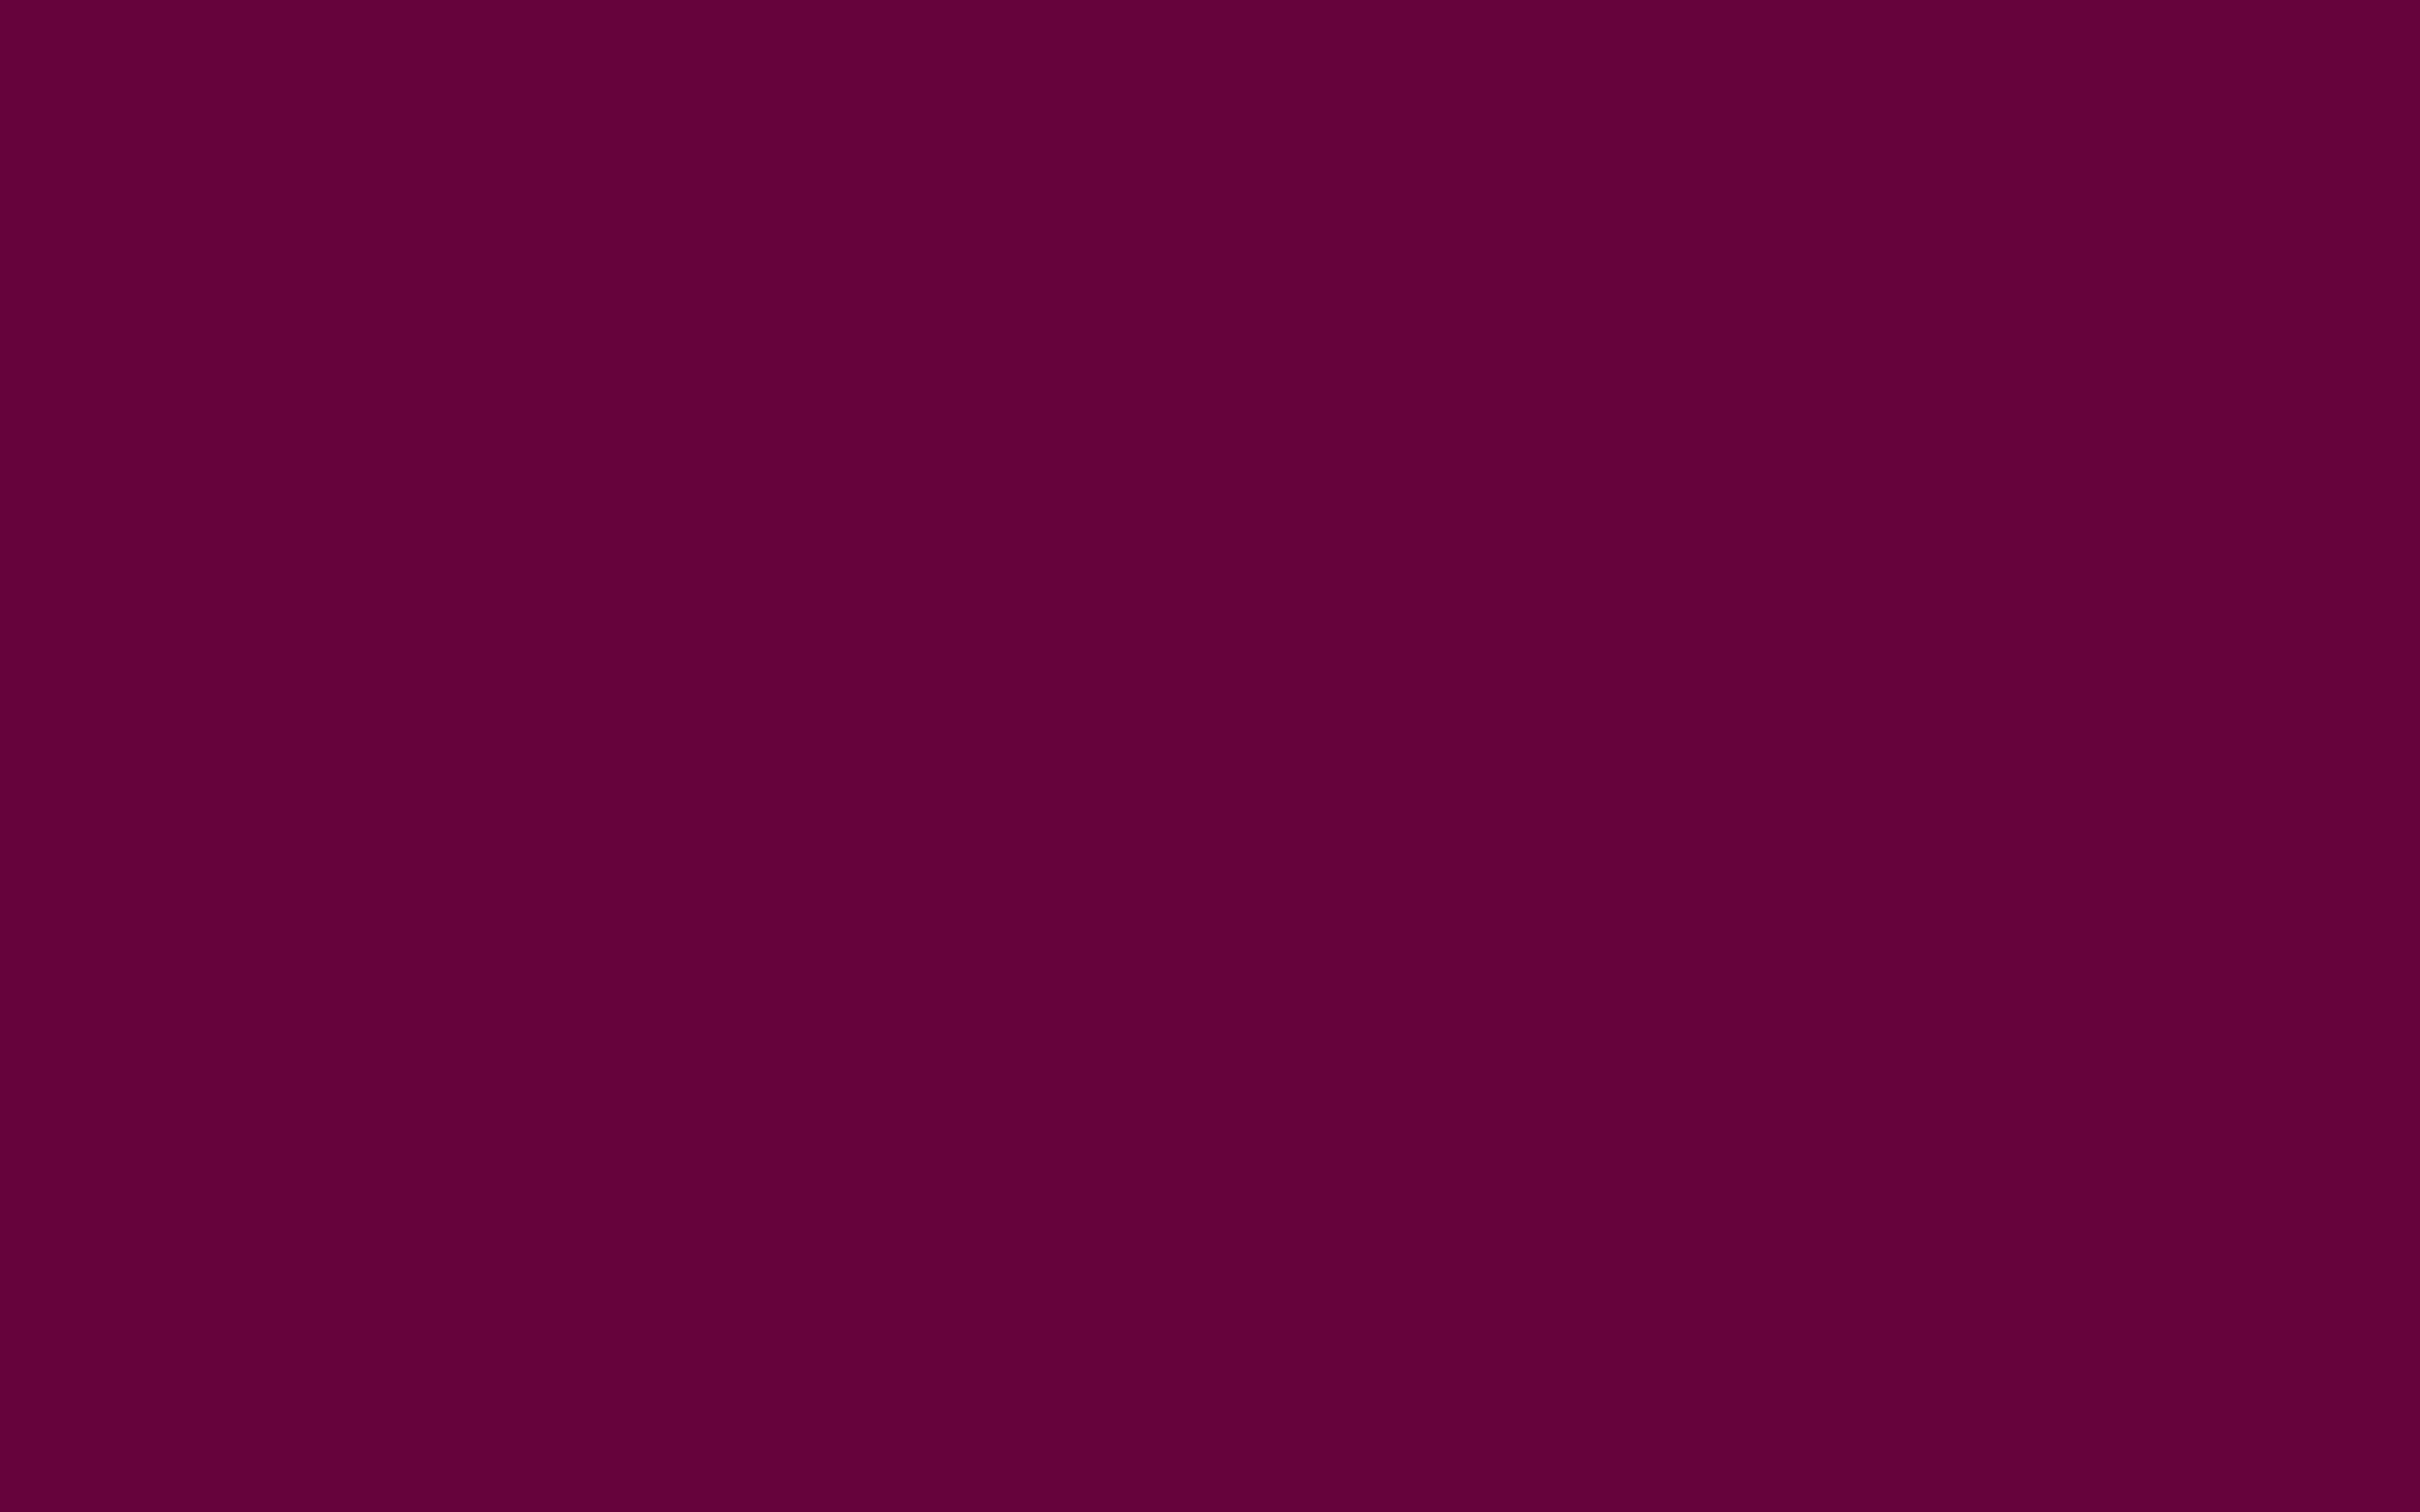 2560x1600 Imperial Purple Solid Color Background